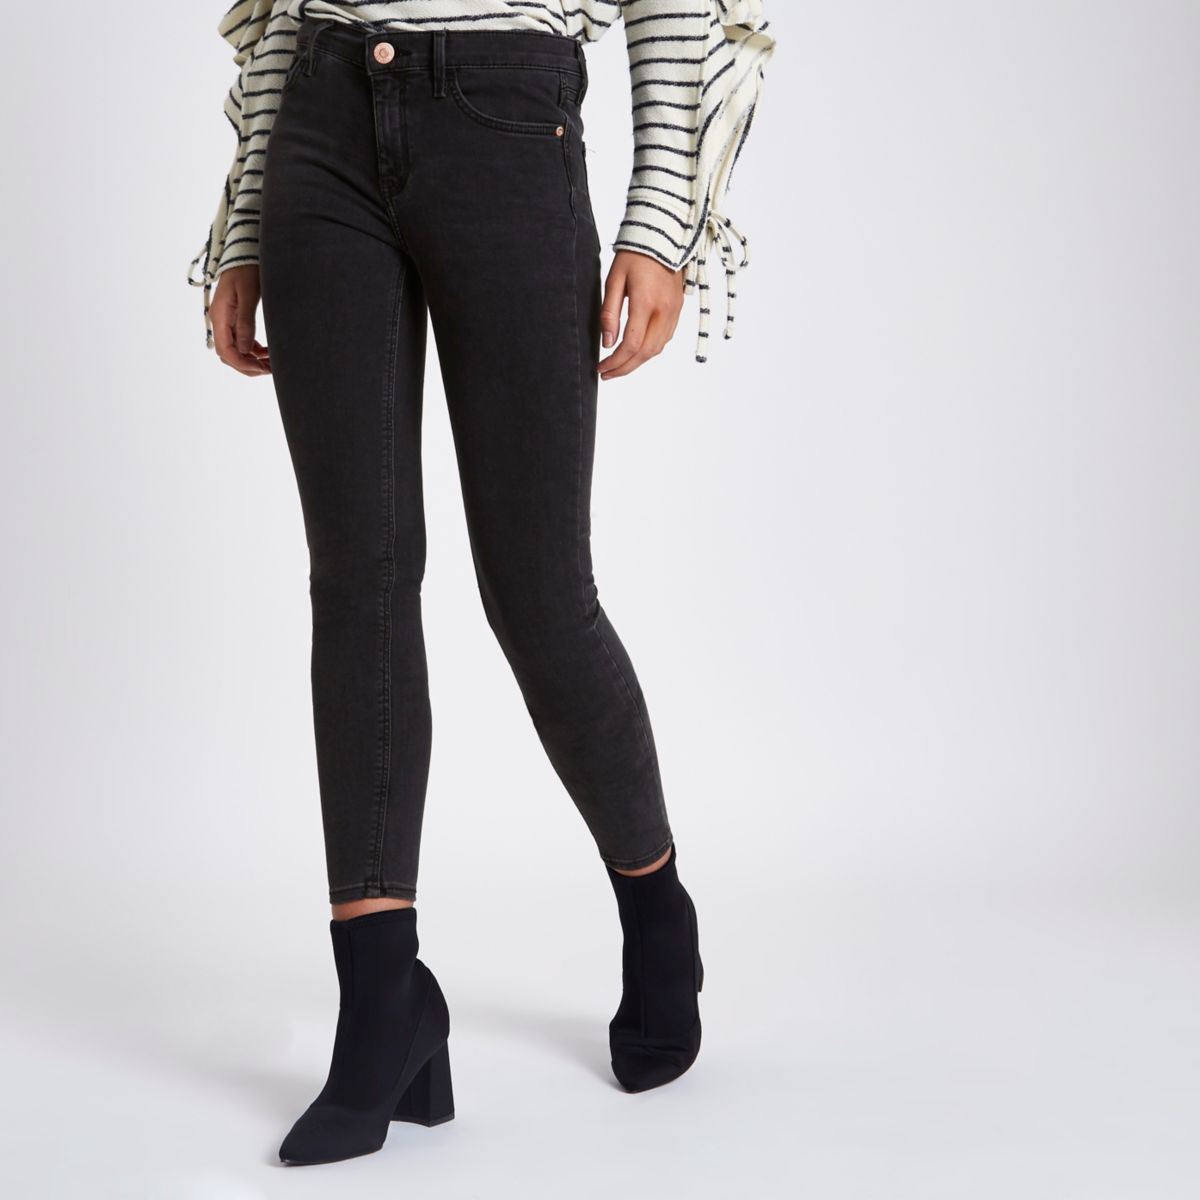 Washed black Amelie super skinny jeans